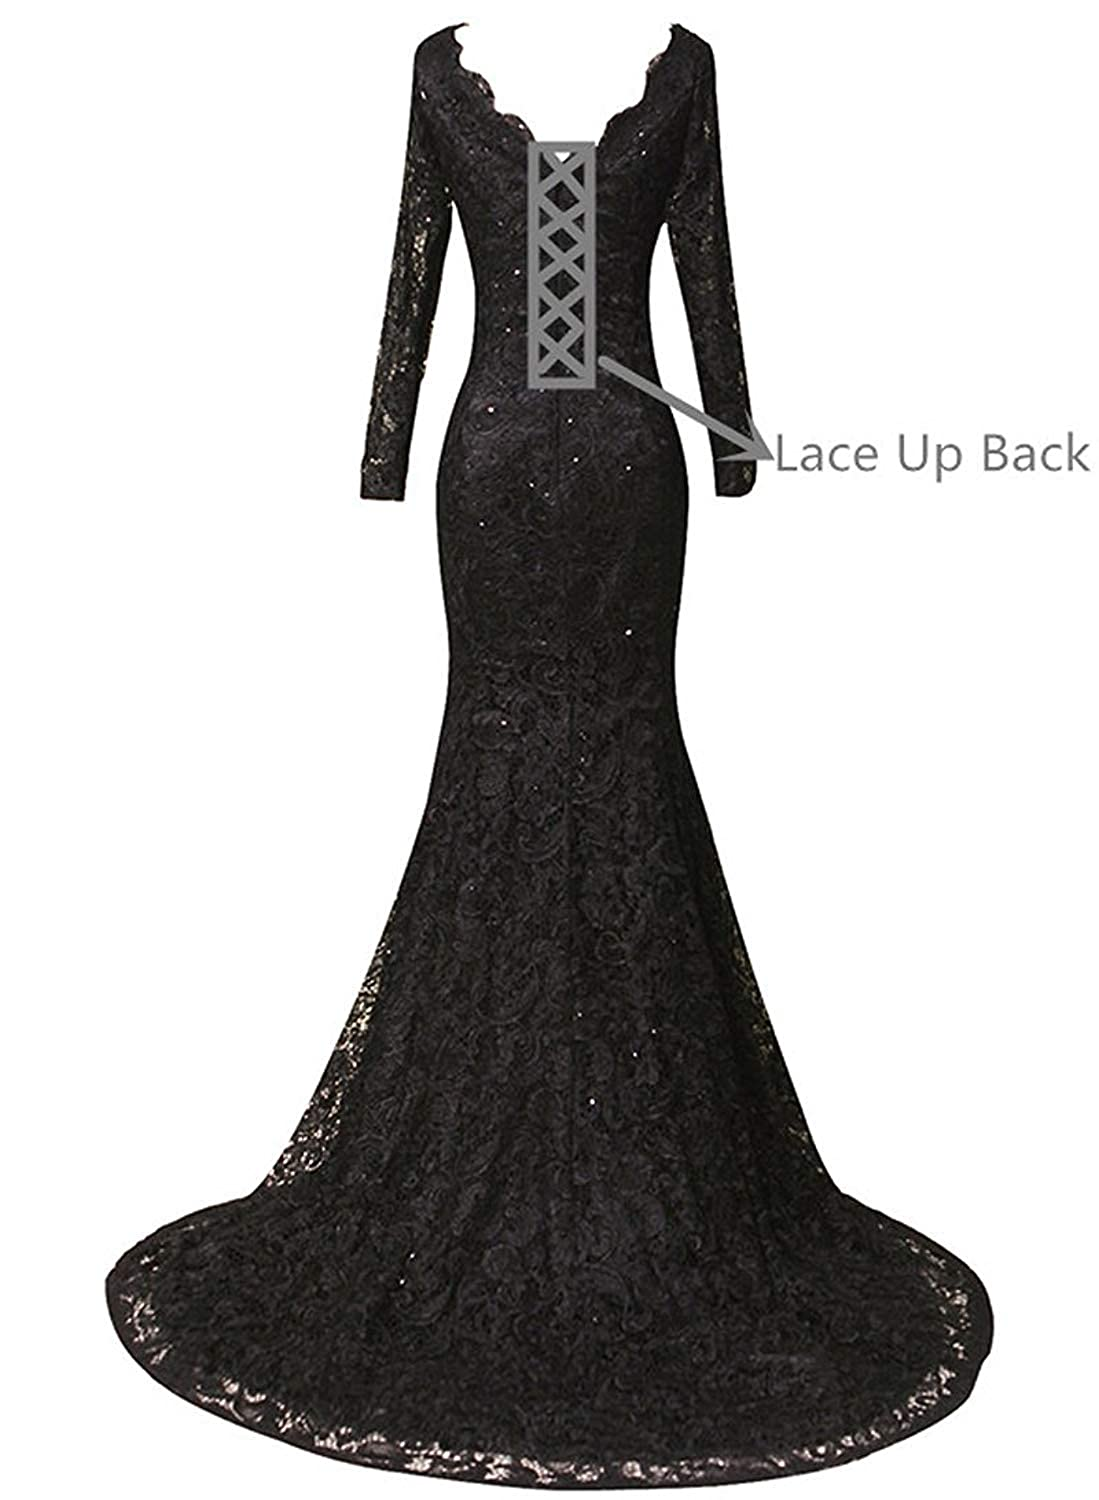 97742ec44b 20KyleBird Women s Elegant V-Neck Mermaid Lace Prom Dresses Long Sleeves  Beaded Evening Party Formal Gowns KB095 at Amazon Women s Clothing store